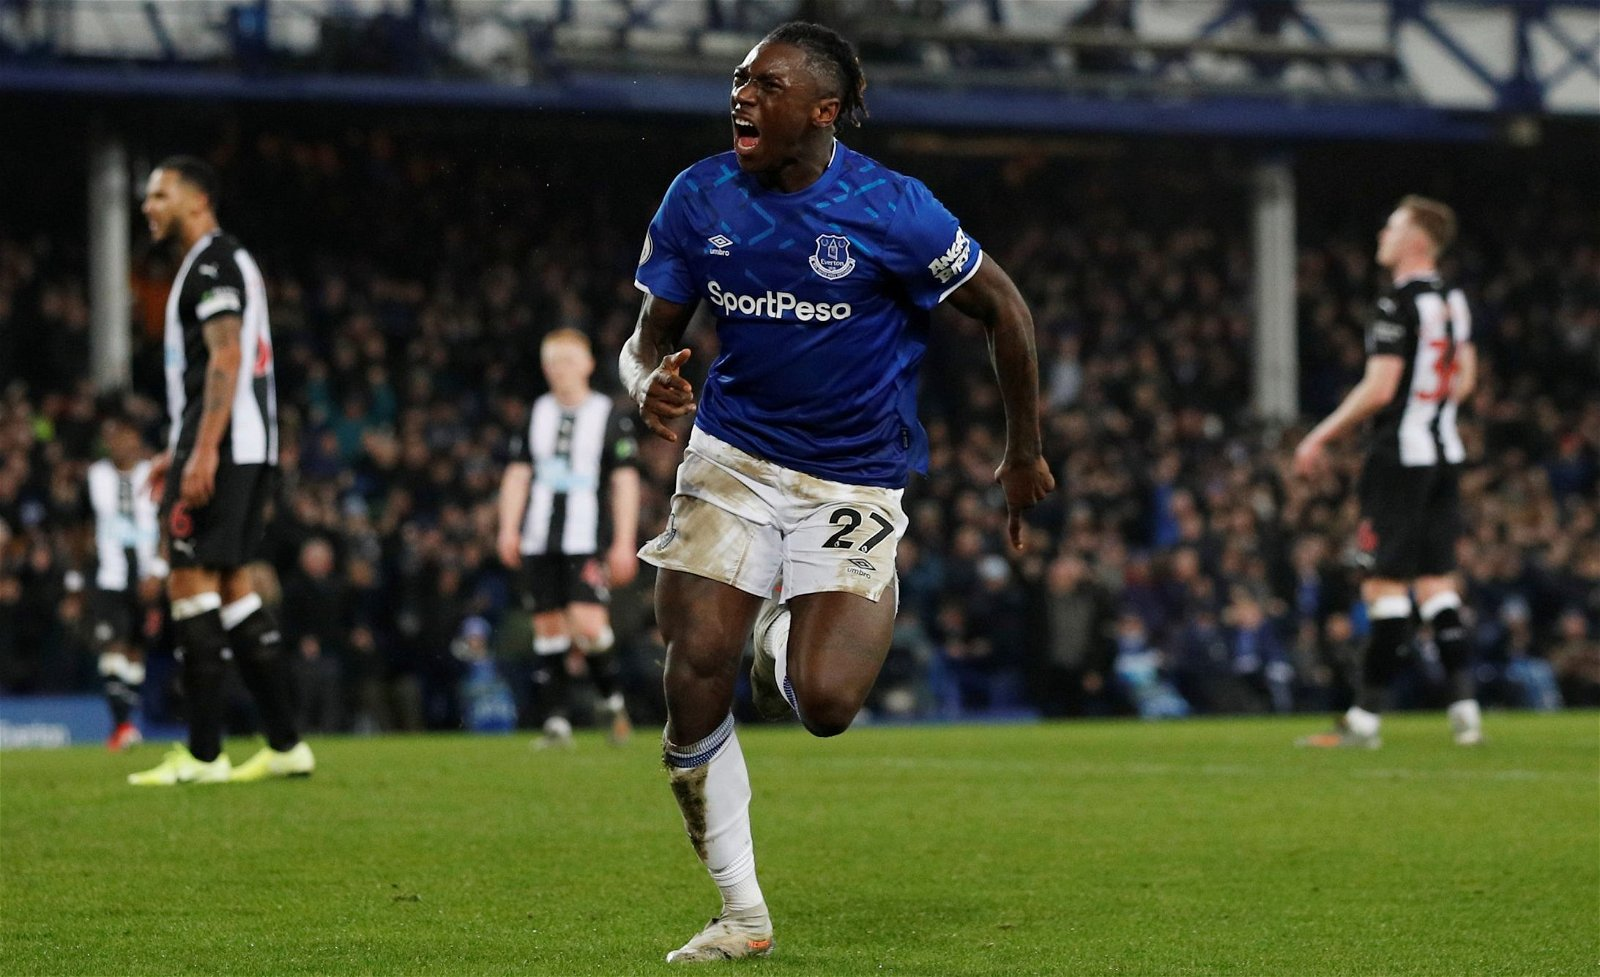 Moise Kean Posts Powerful Message On Instagram After Scoring First Everton Goal Footballfancast Com